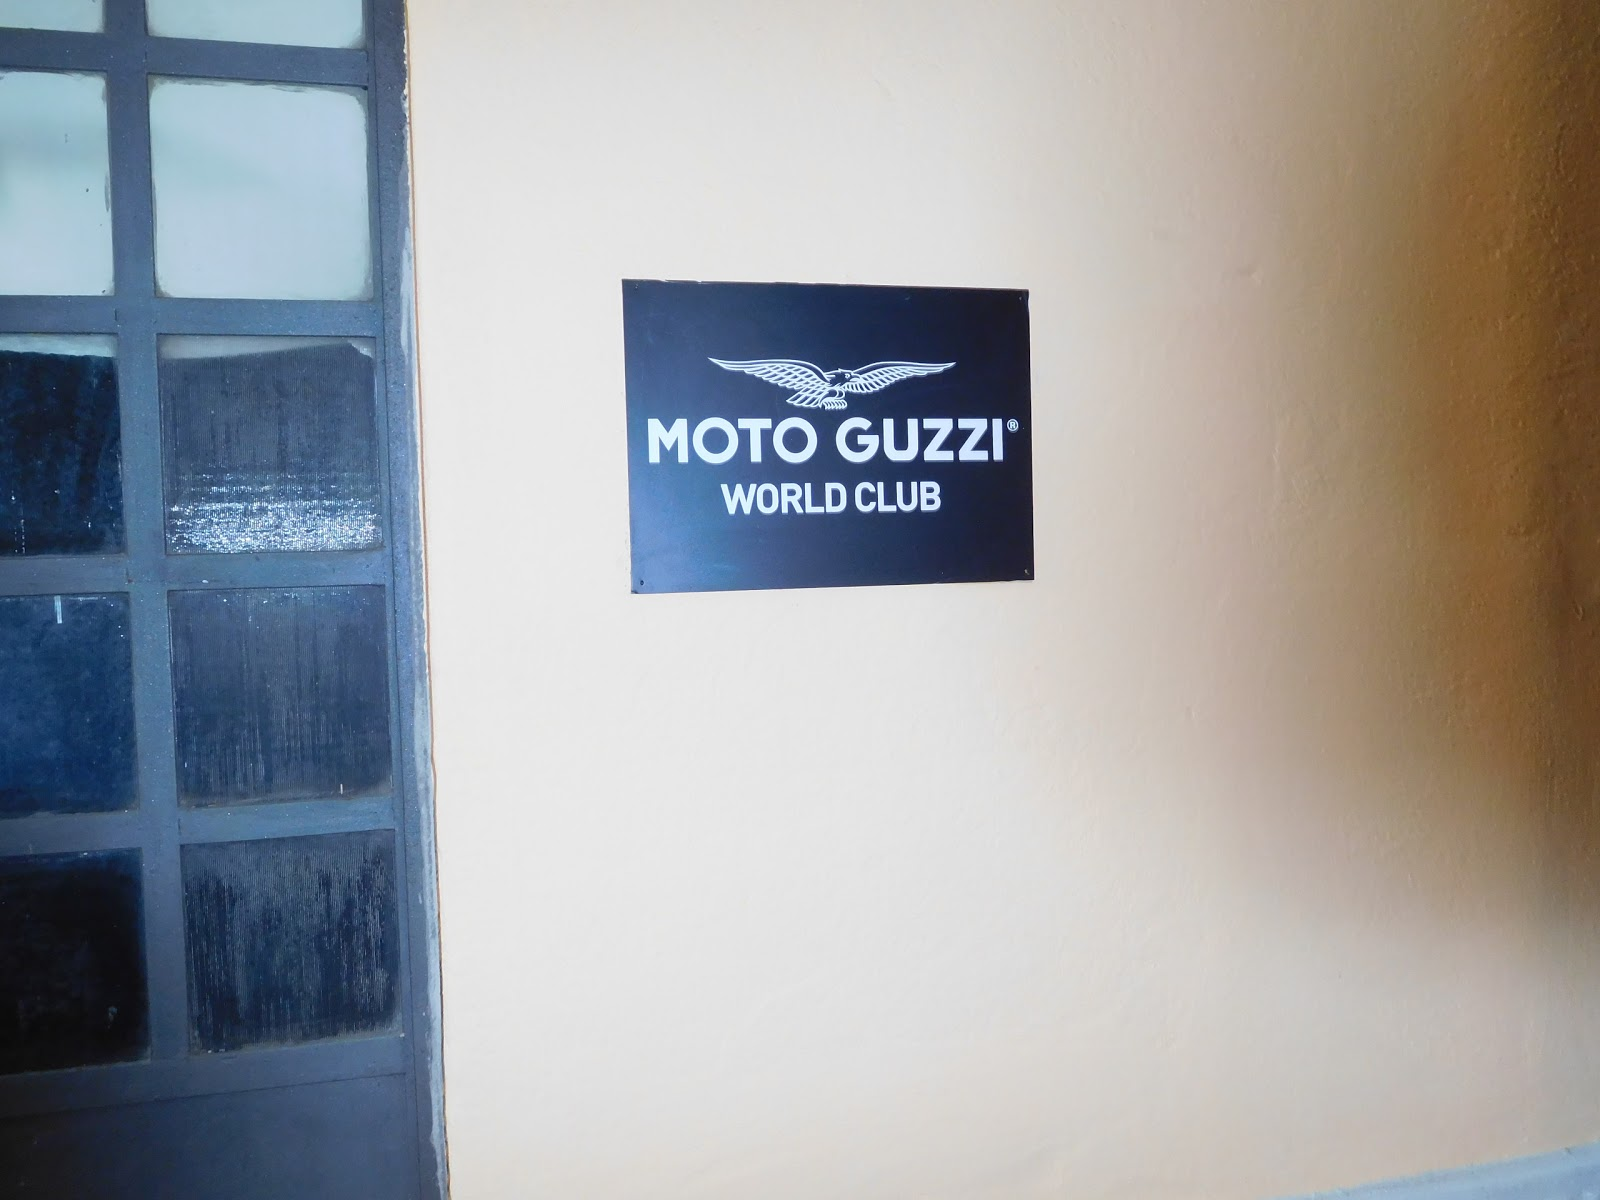 Tigh and Alex at the Moto Guzzi World Club on Lake Como